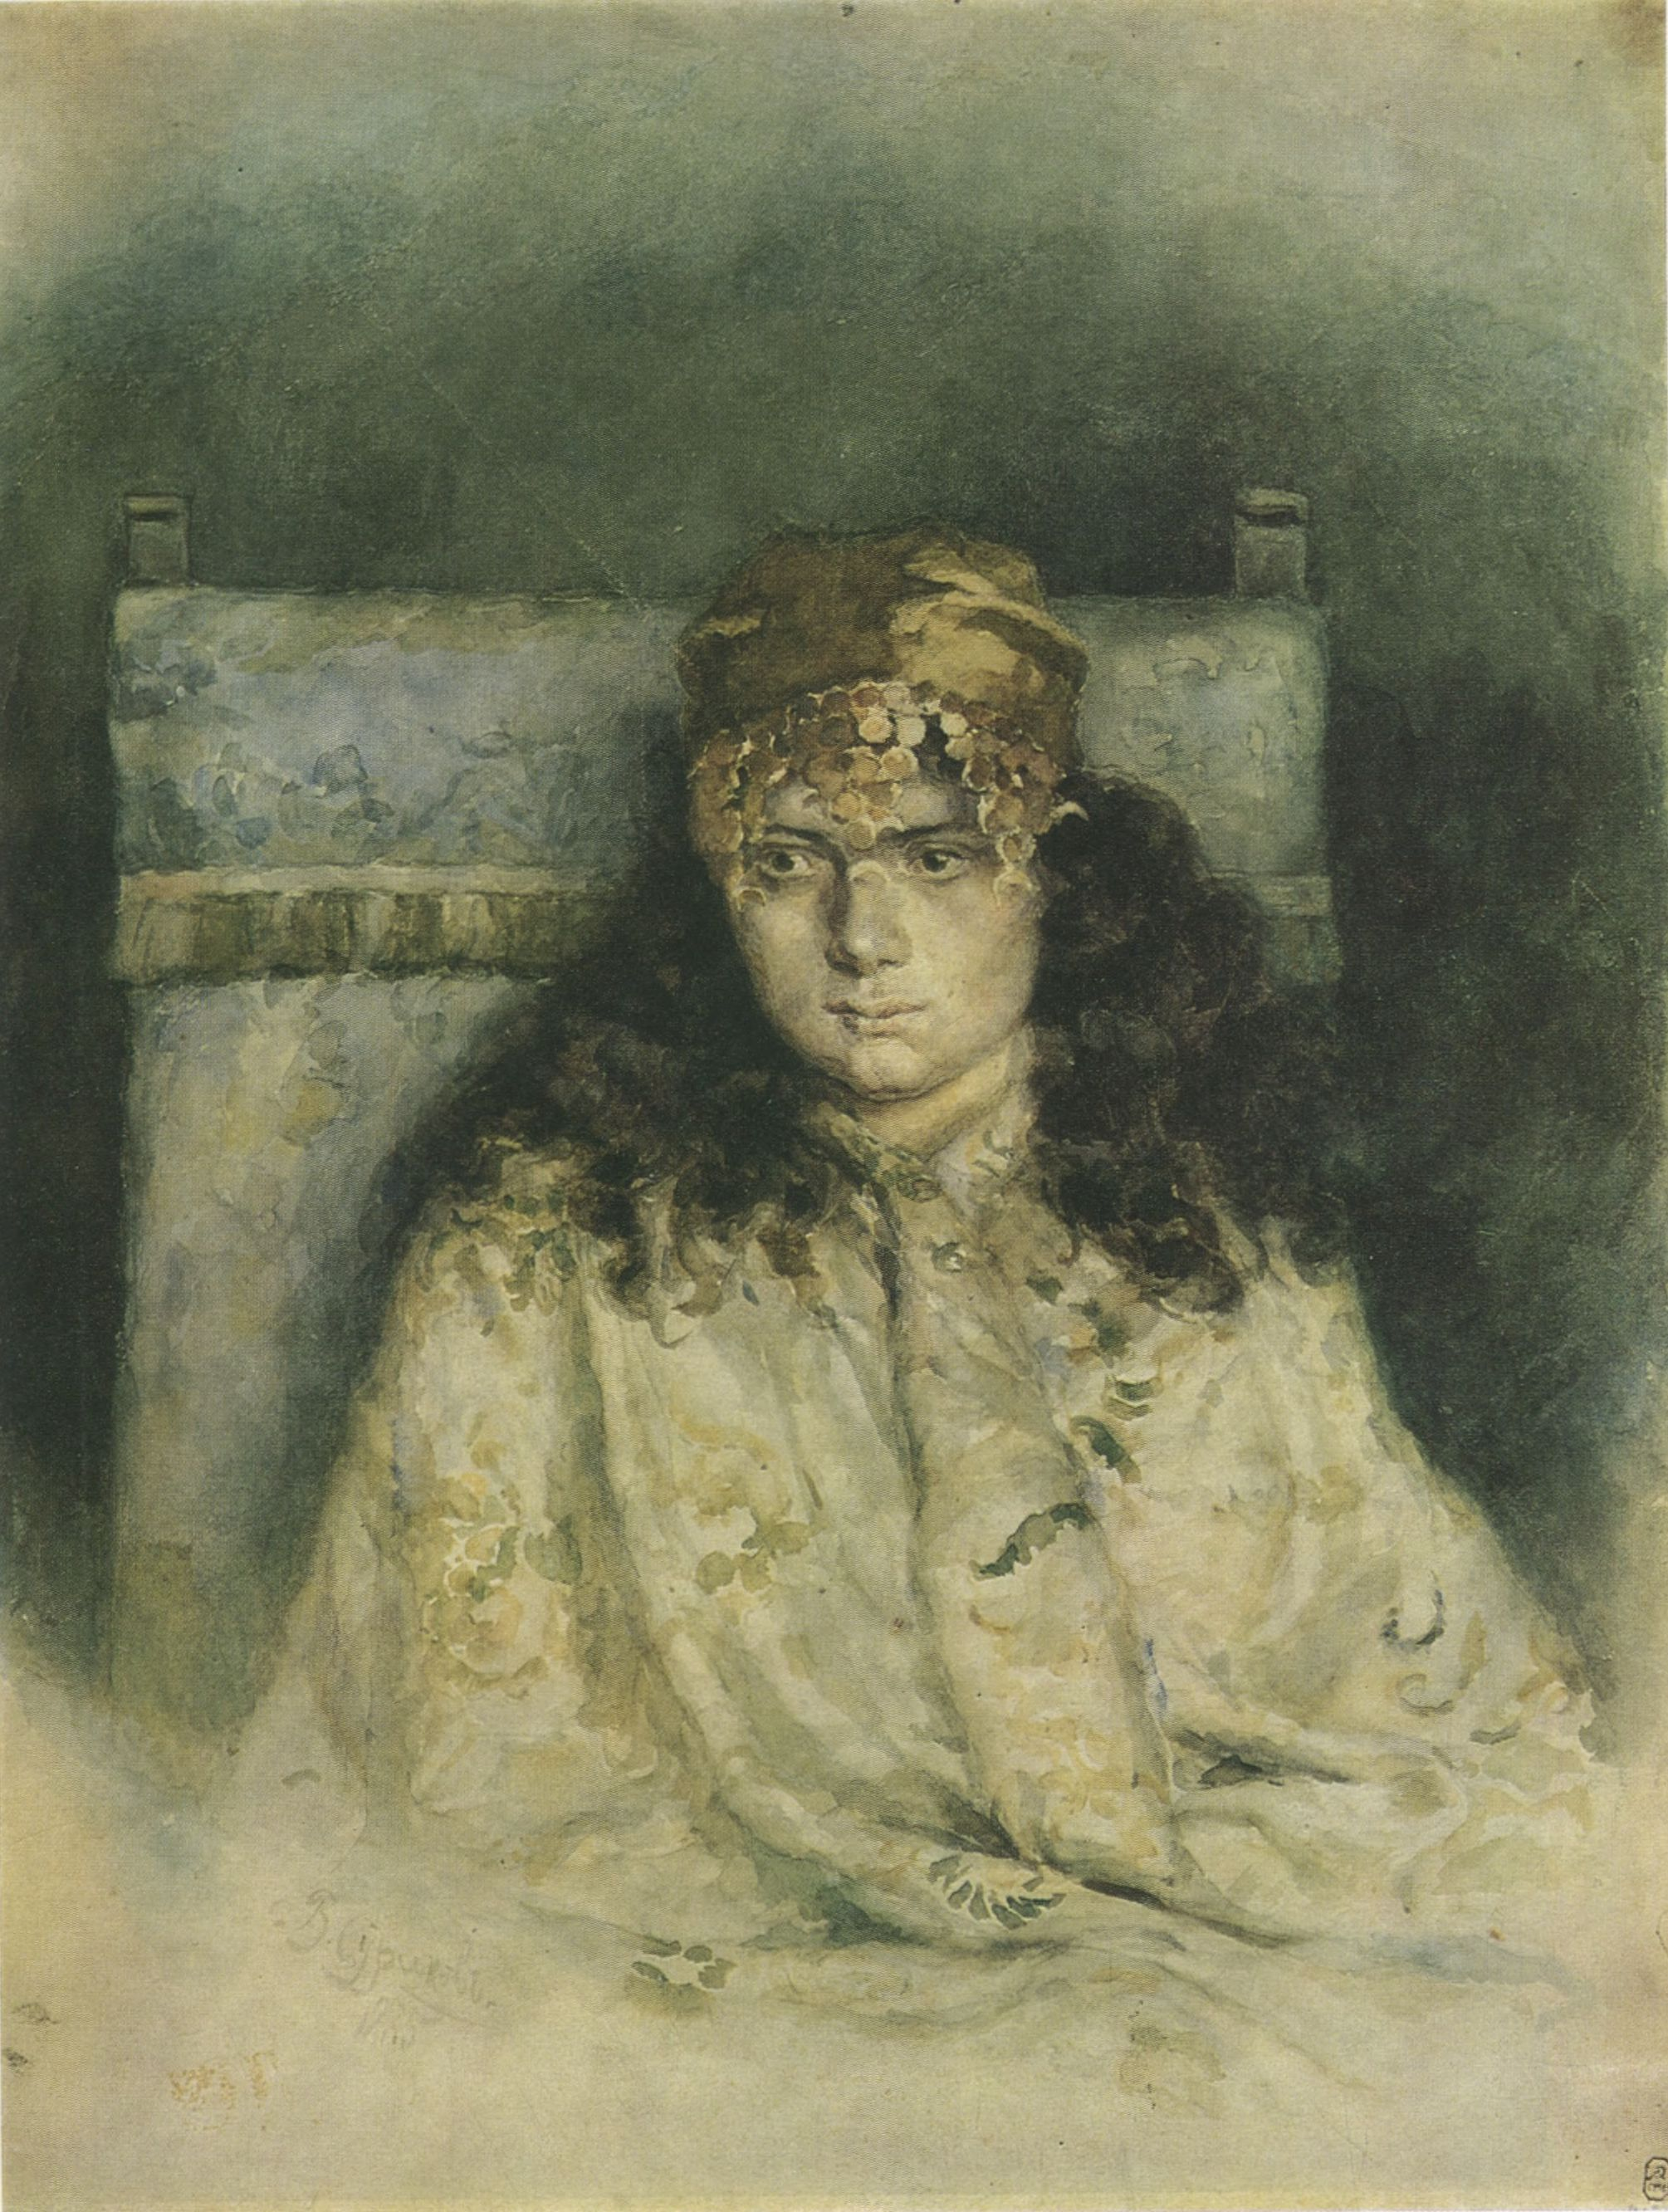 49. Женский портрет. 1885 (Portrait of a Woman. 1885)